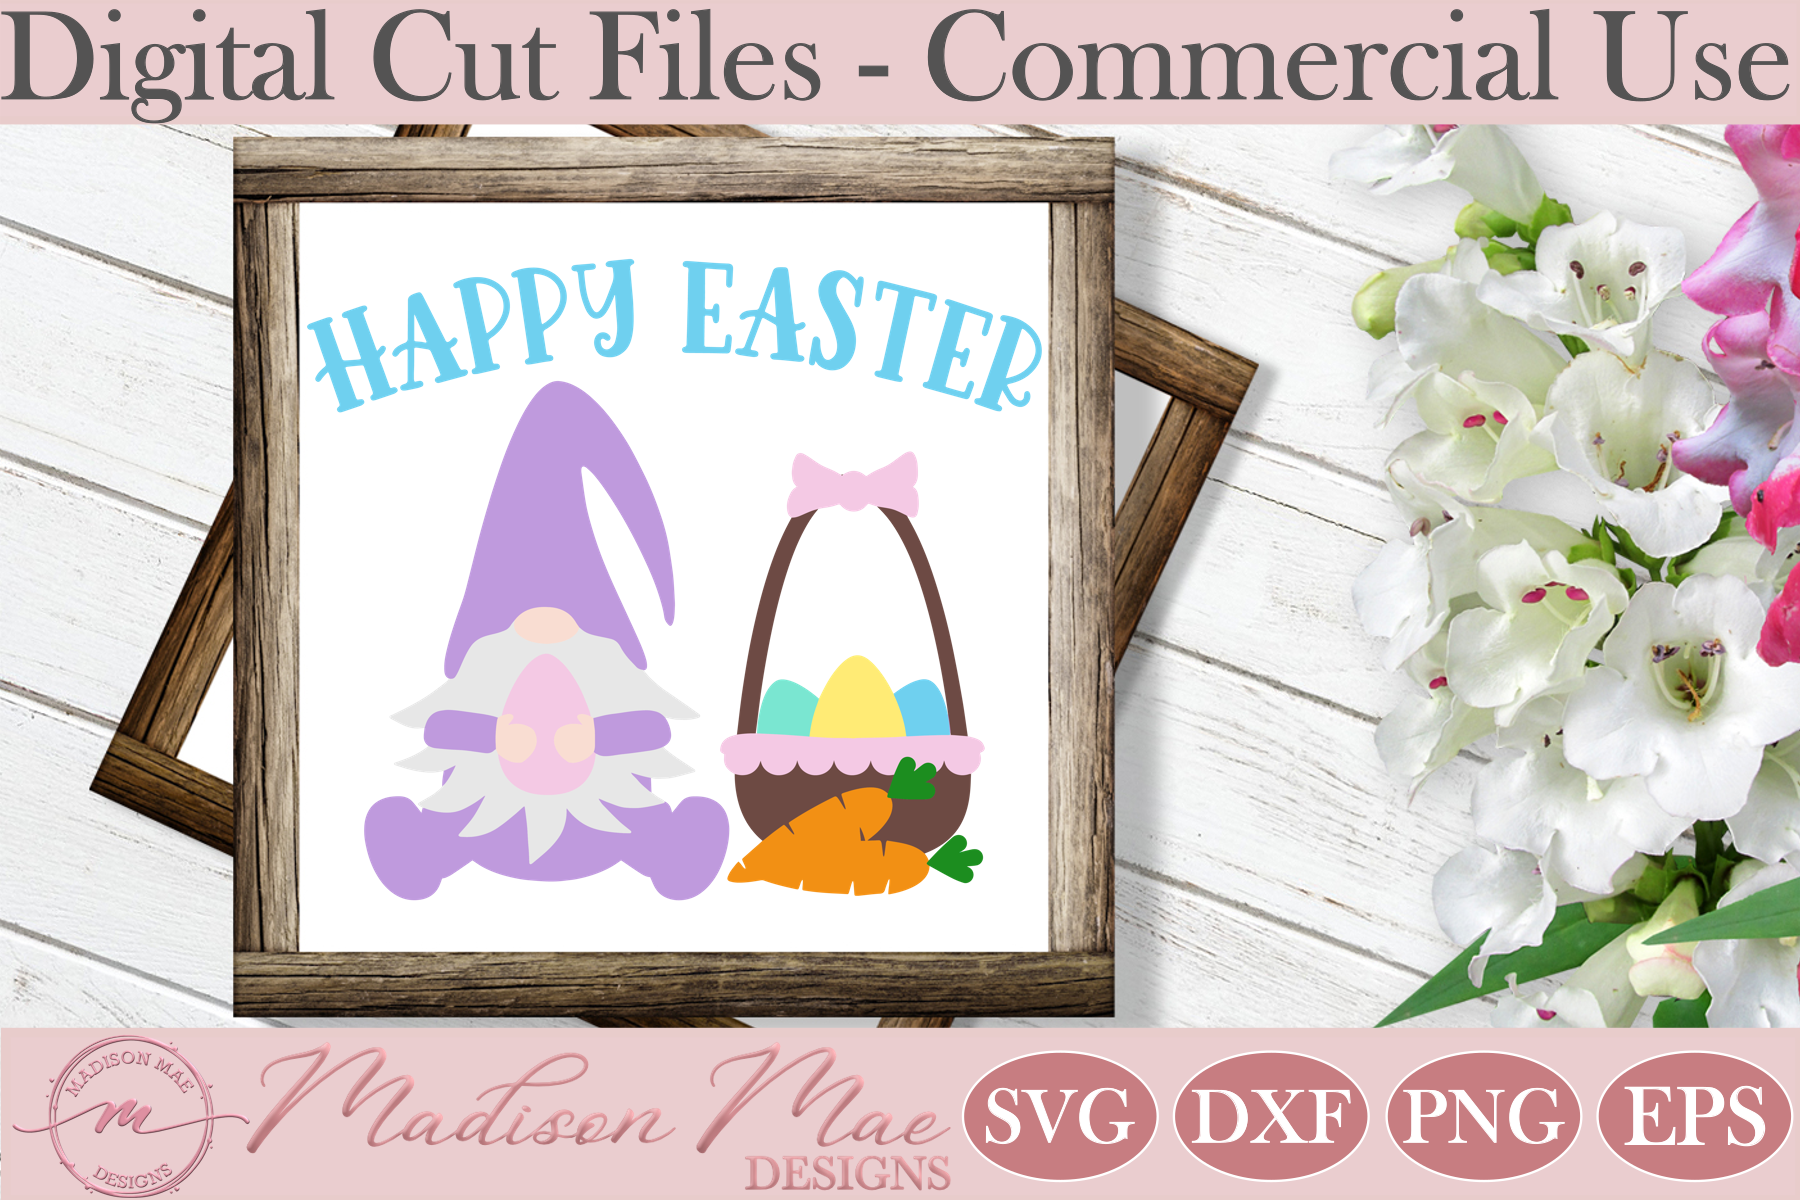 Download Free Happy Easter Gnome With Basket Graphic By Madison Mae Designs for Cricut Explore, Silhouette and other cutting machines.